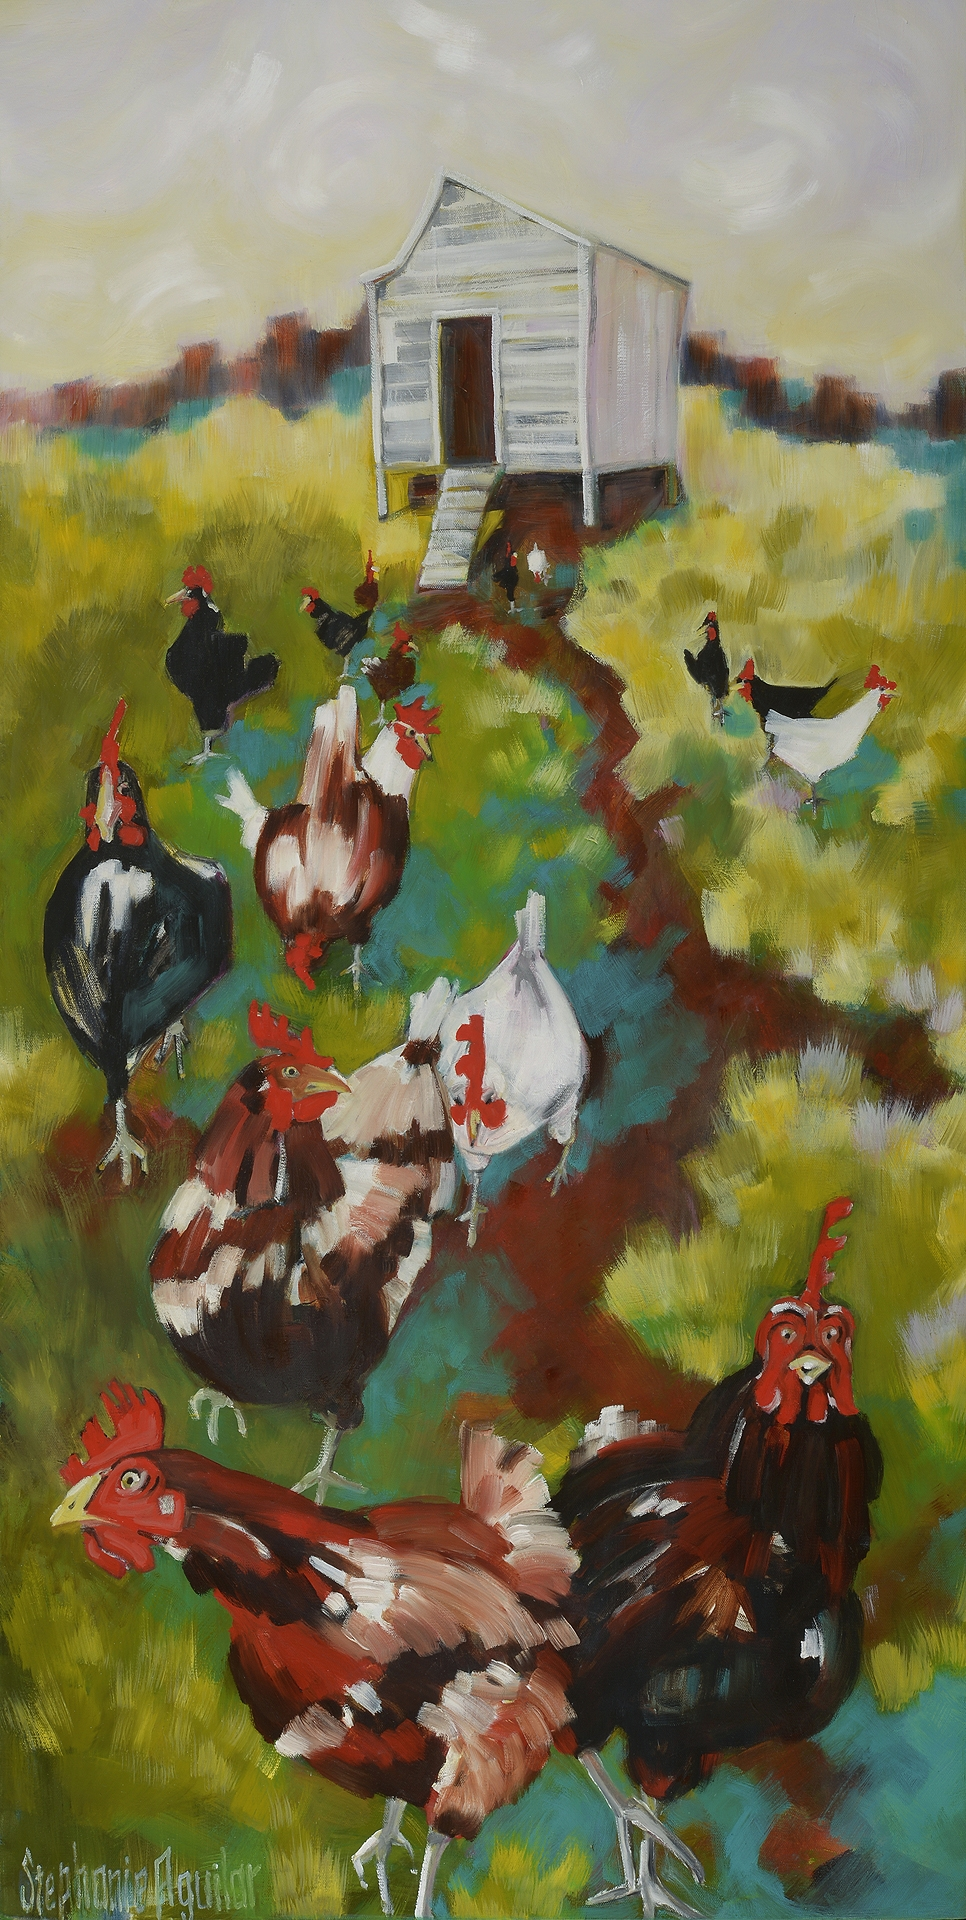 Out of the Hen House, 2017